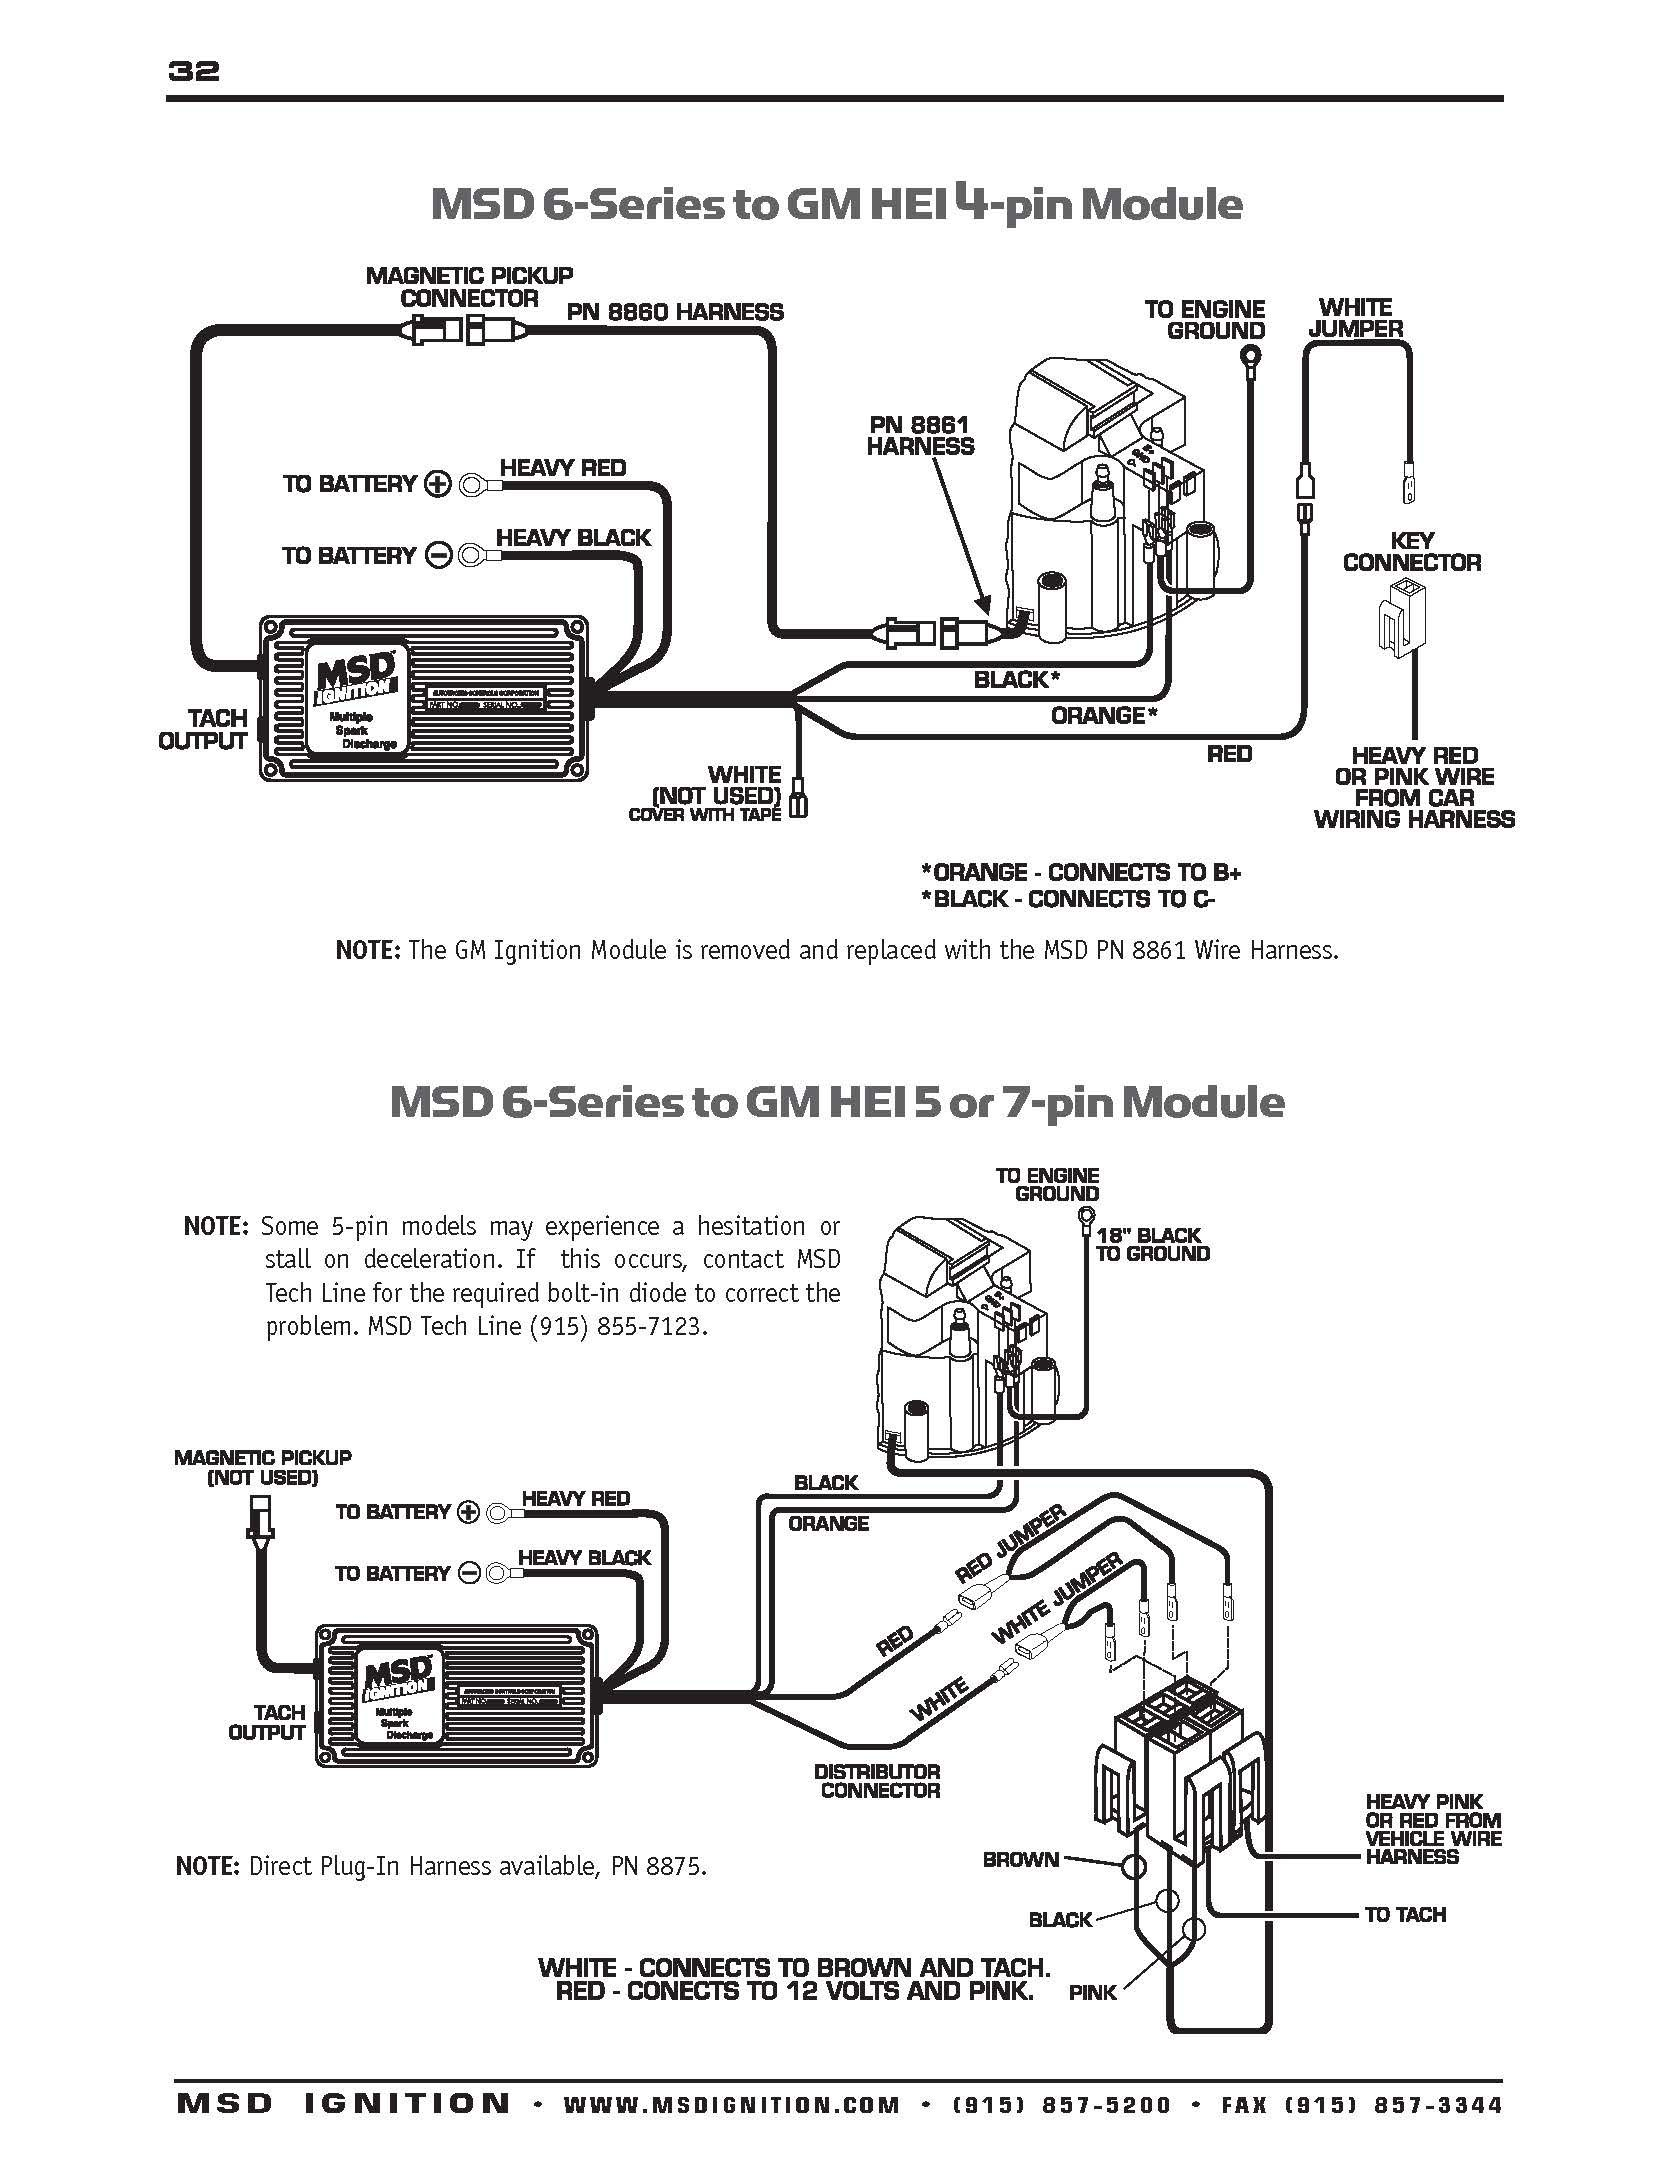 msd ignition wiring diagrams msd ignition wiring diagrams 1966 chevelle  [ 1675 x 2175 Pixel ]